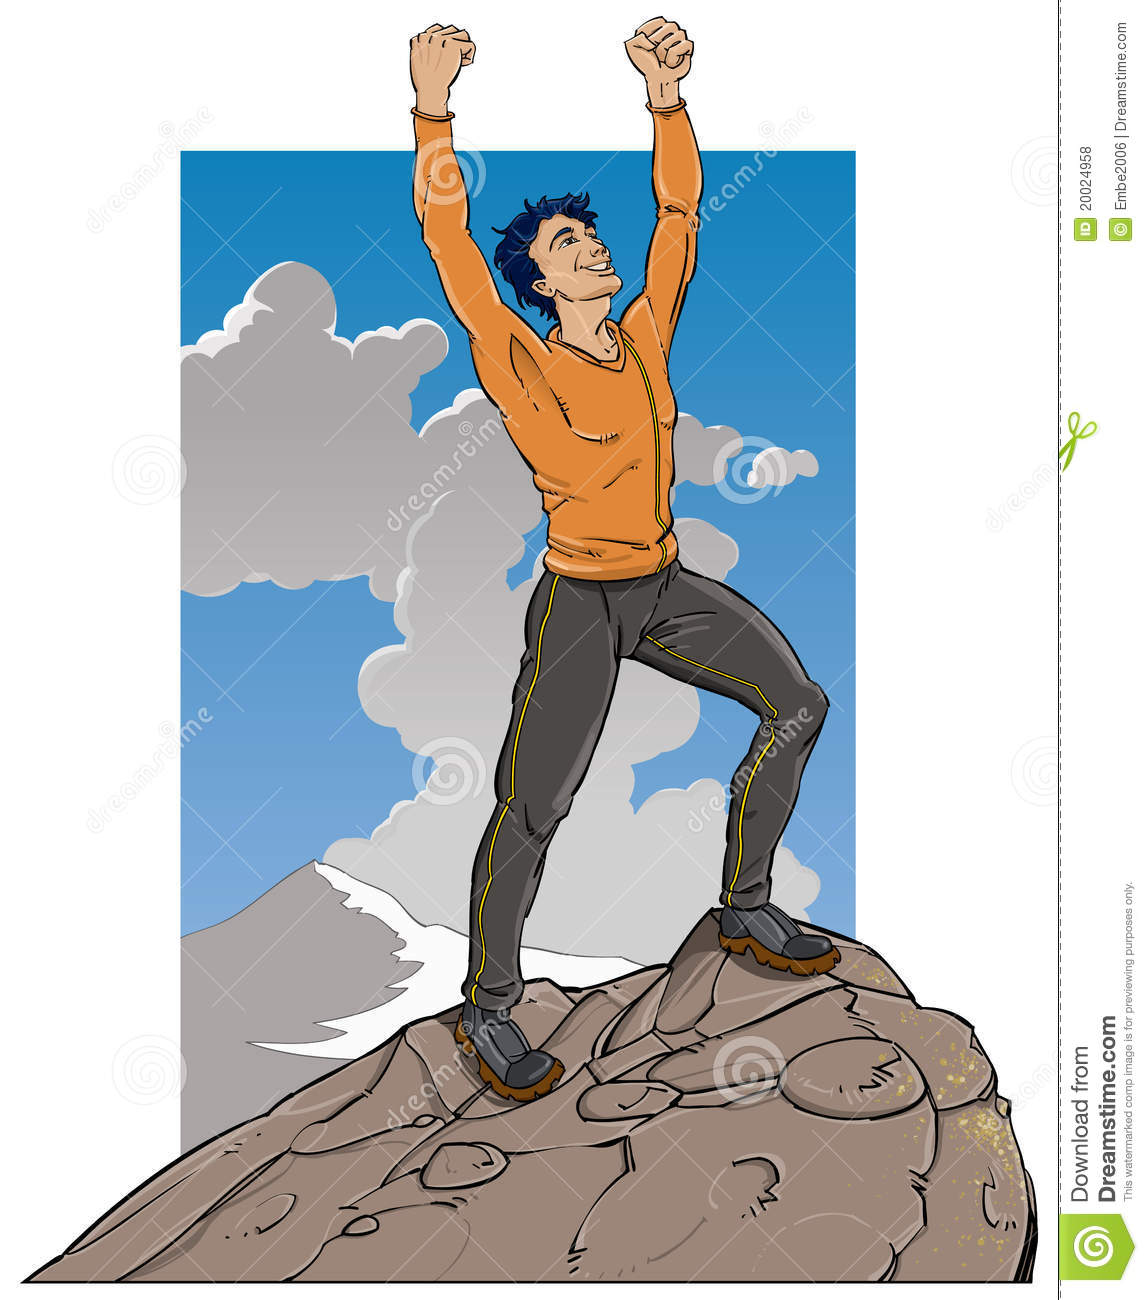 Person on top of a mountain cartoon.